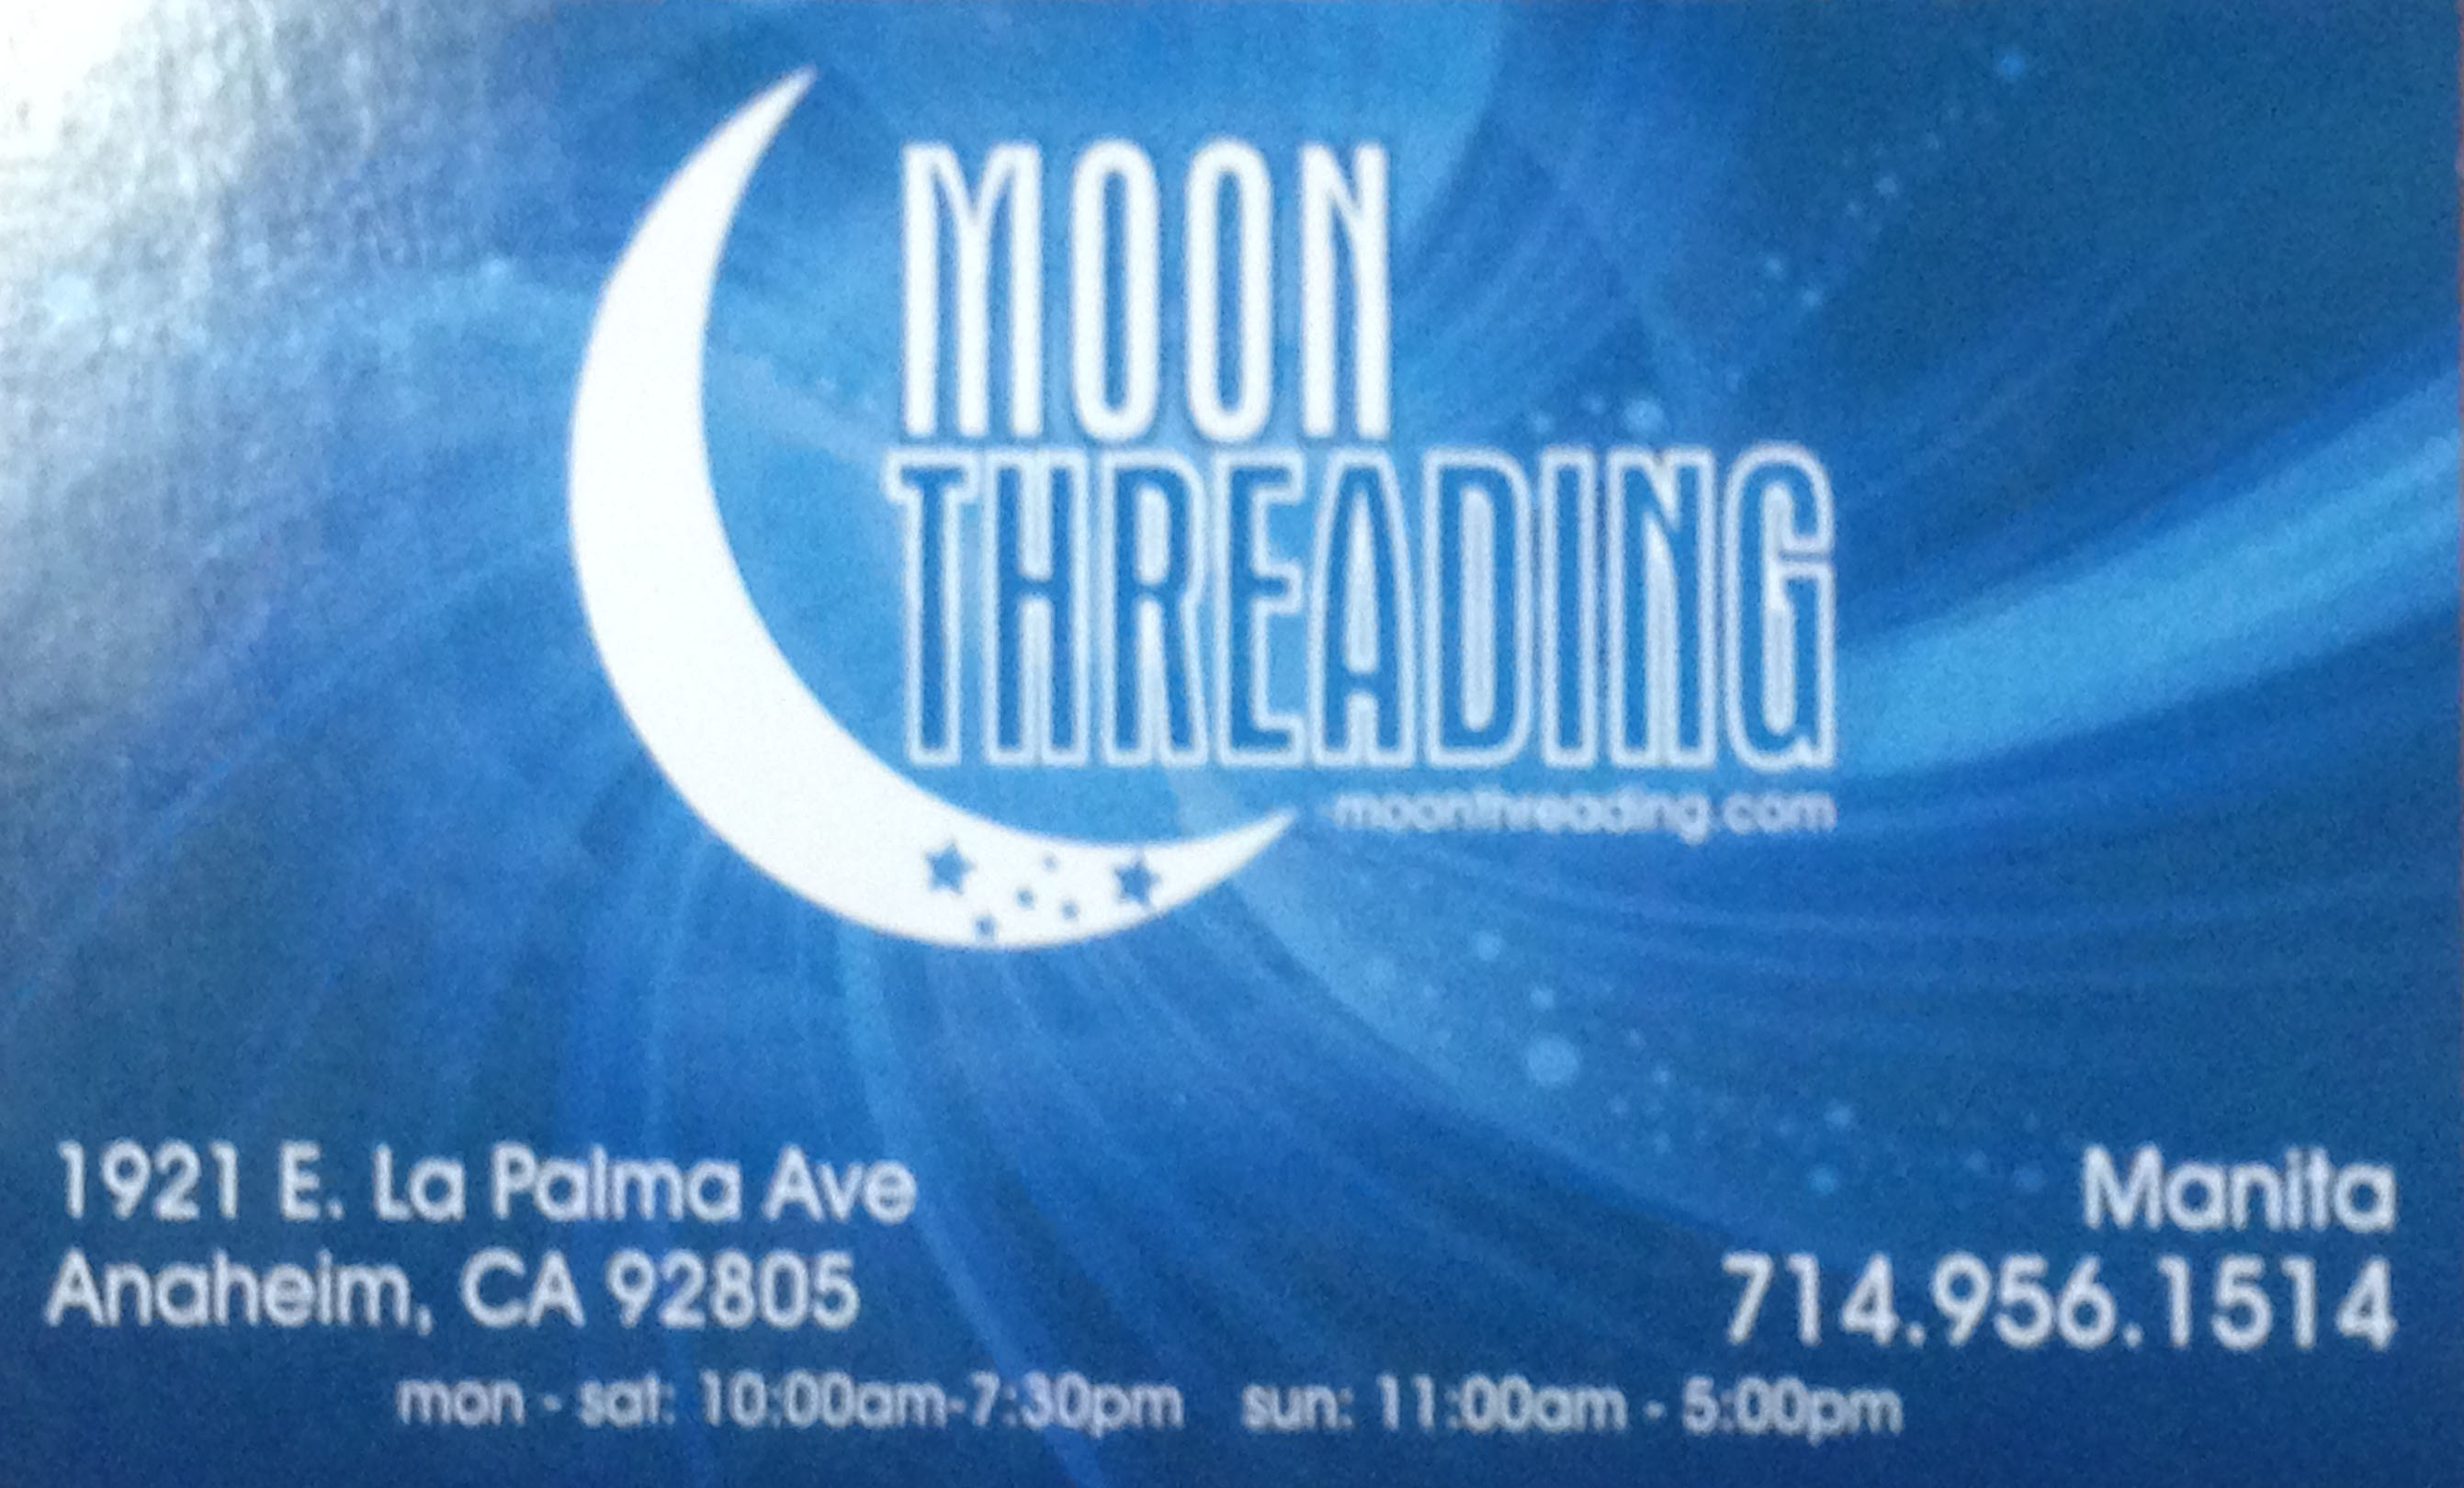 moon Threading